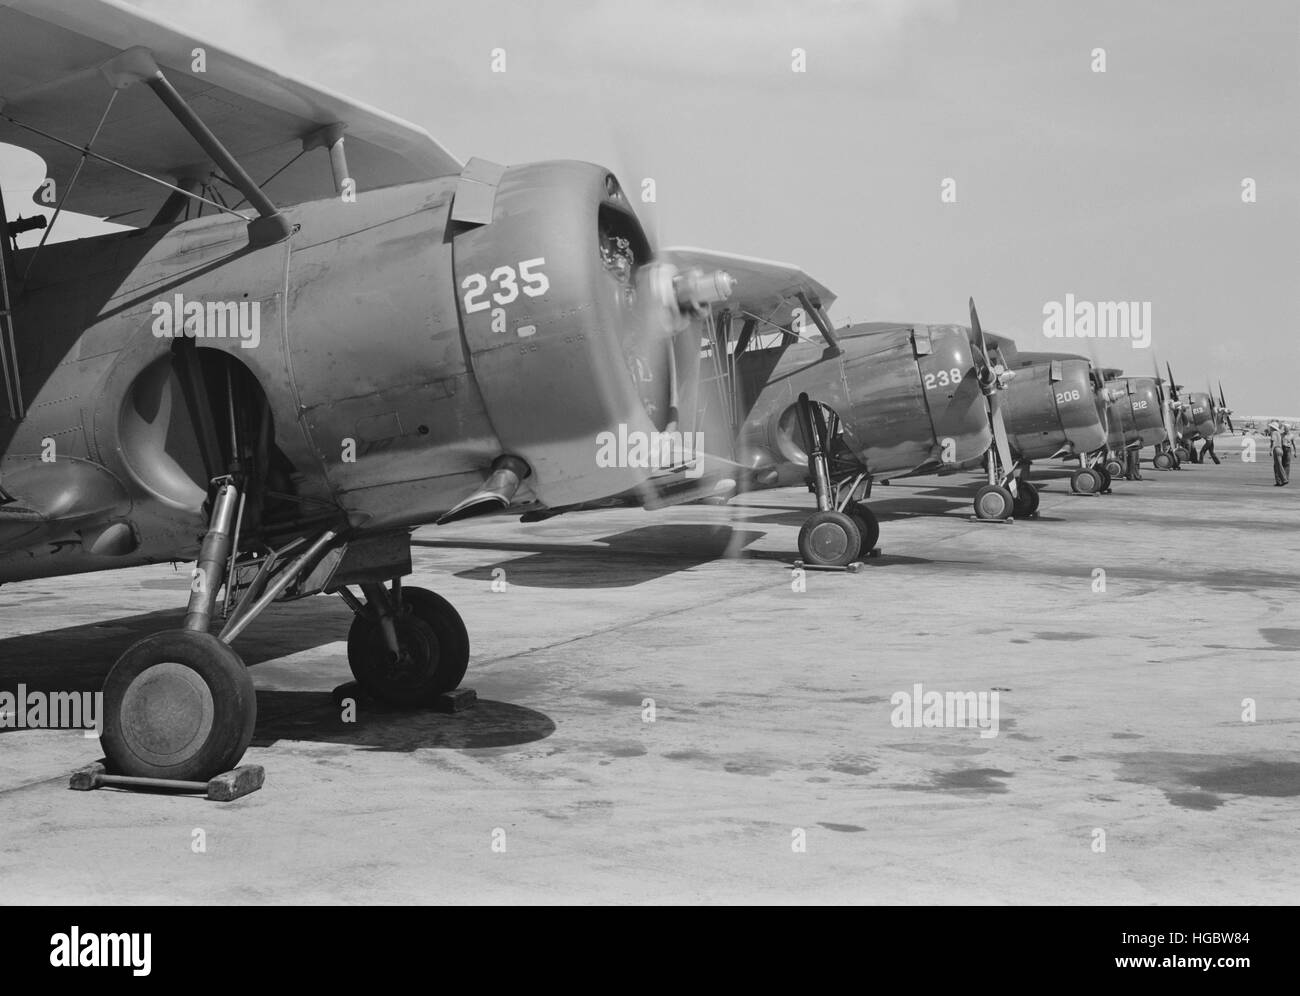 U.S. Navy F3F fighter planes lined up and eager for flight, Corpus Christi, Texas, 1942. - Stock Image